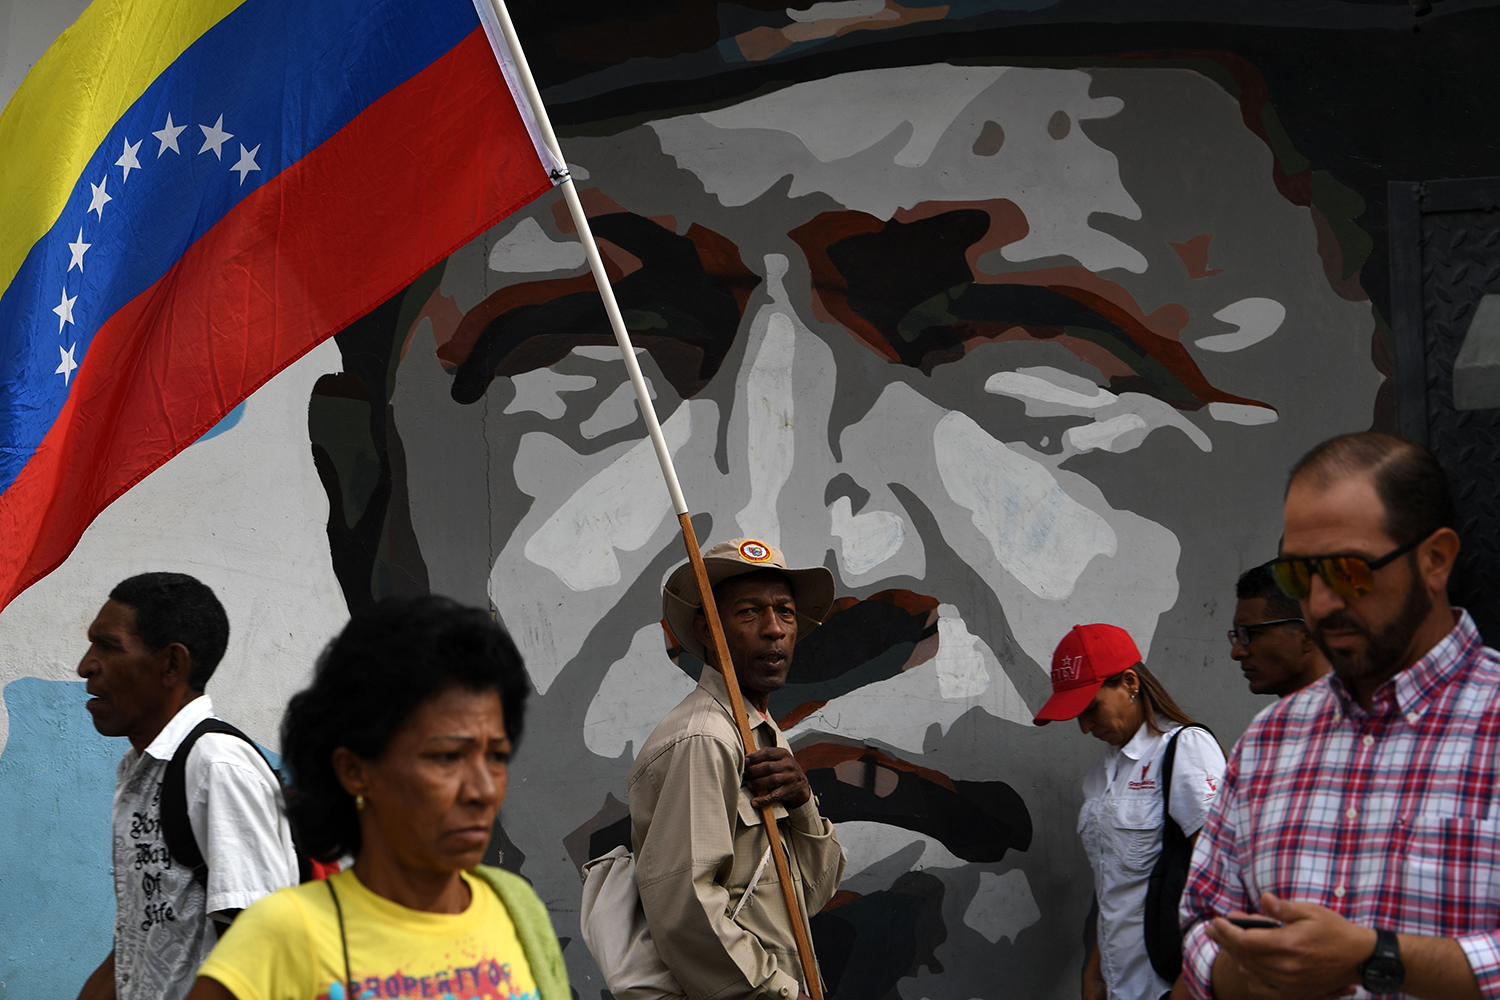 A member of the Bolivarian militia holds a Venezuelan flag as he passes a mural depicting Venezuelan late President Hugo Chavez during a march in support of Venezuelan President Nicolas Maduro in Caracas on Jan. 14. YURI CORTEZ/AFP via Getty Images